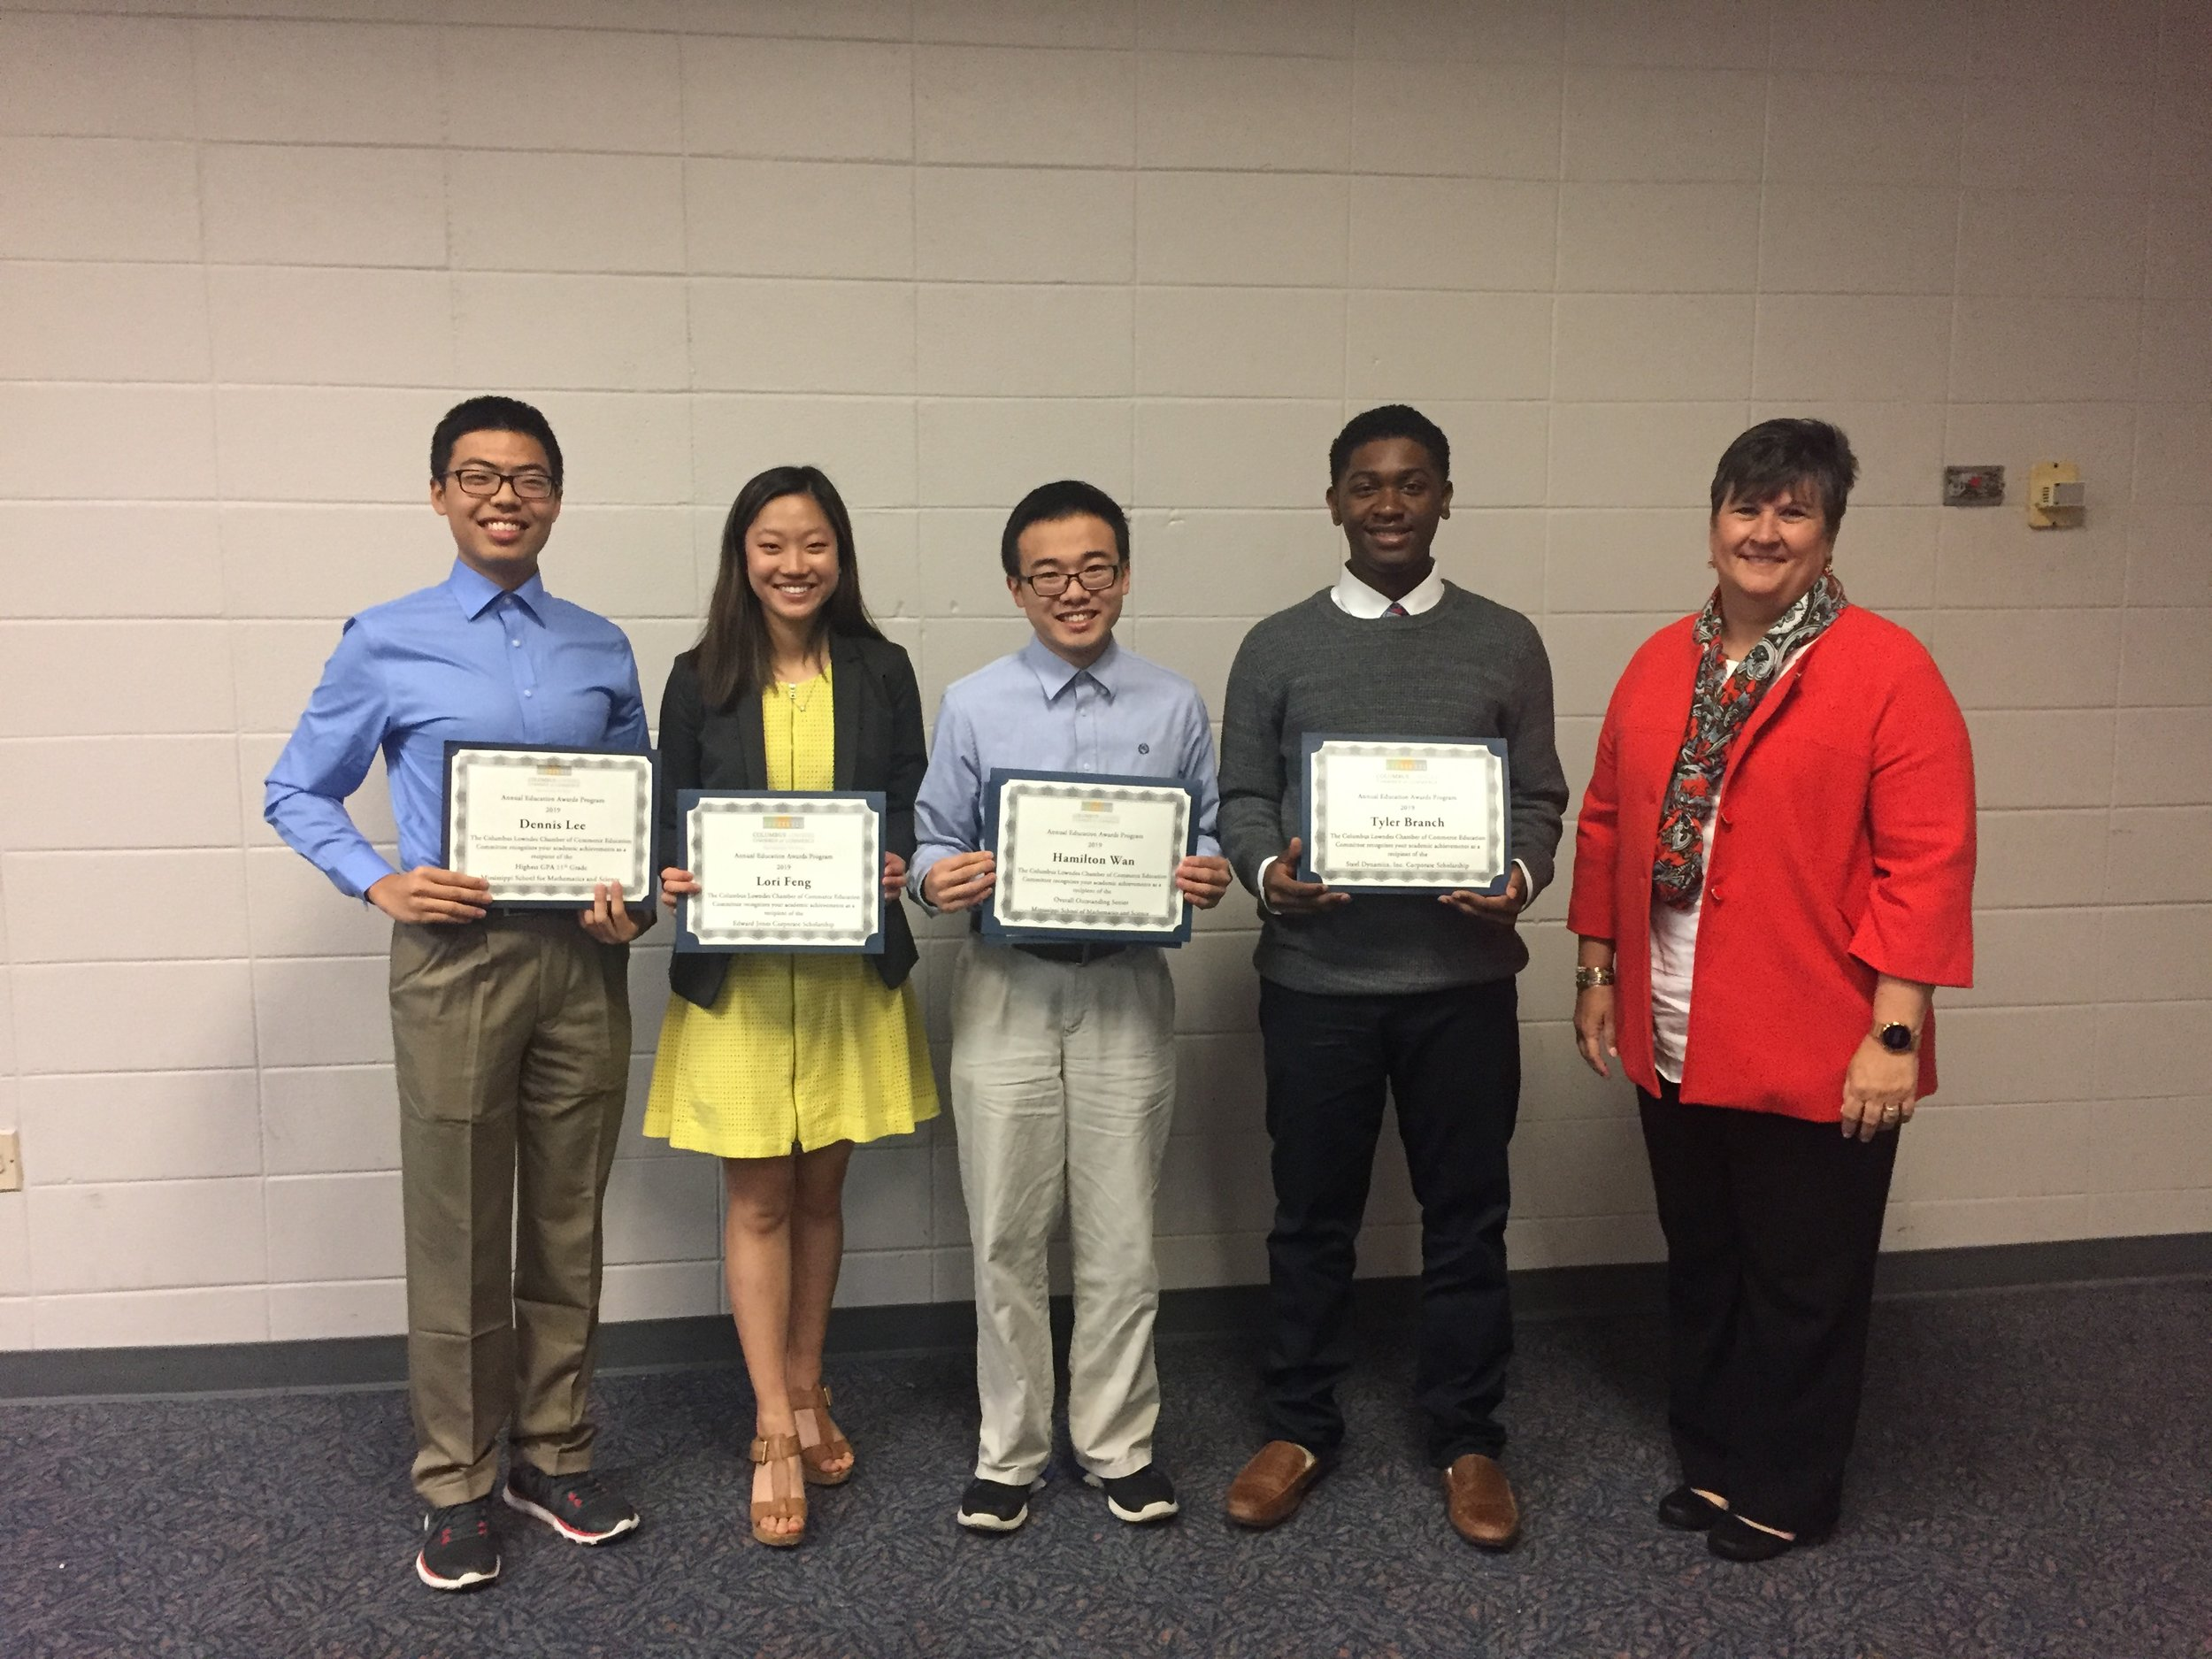 MSMS Director for Academic Affairs, Mrs. Kelly Brown, with MSMS students Dennis Lee, Lori Feng, Hamilton Wan, and Tyler Branch.